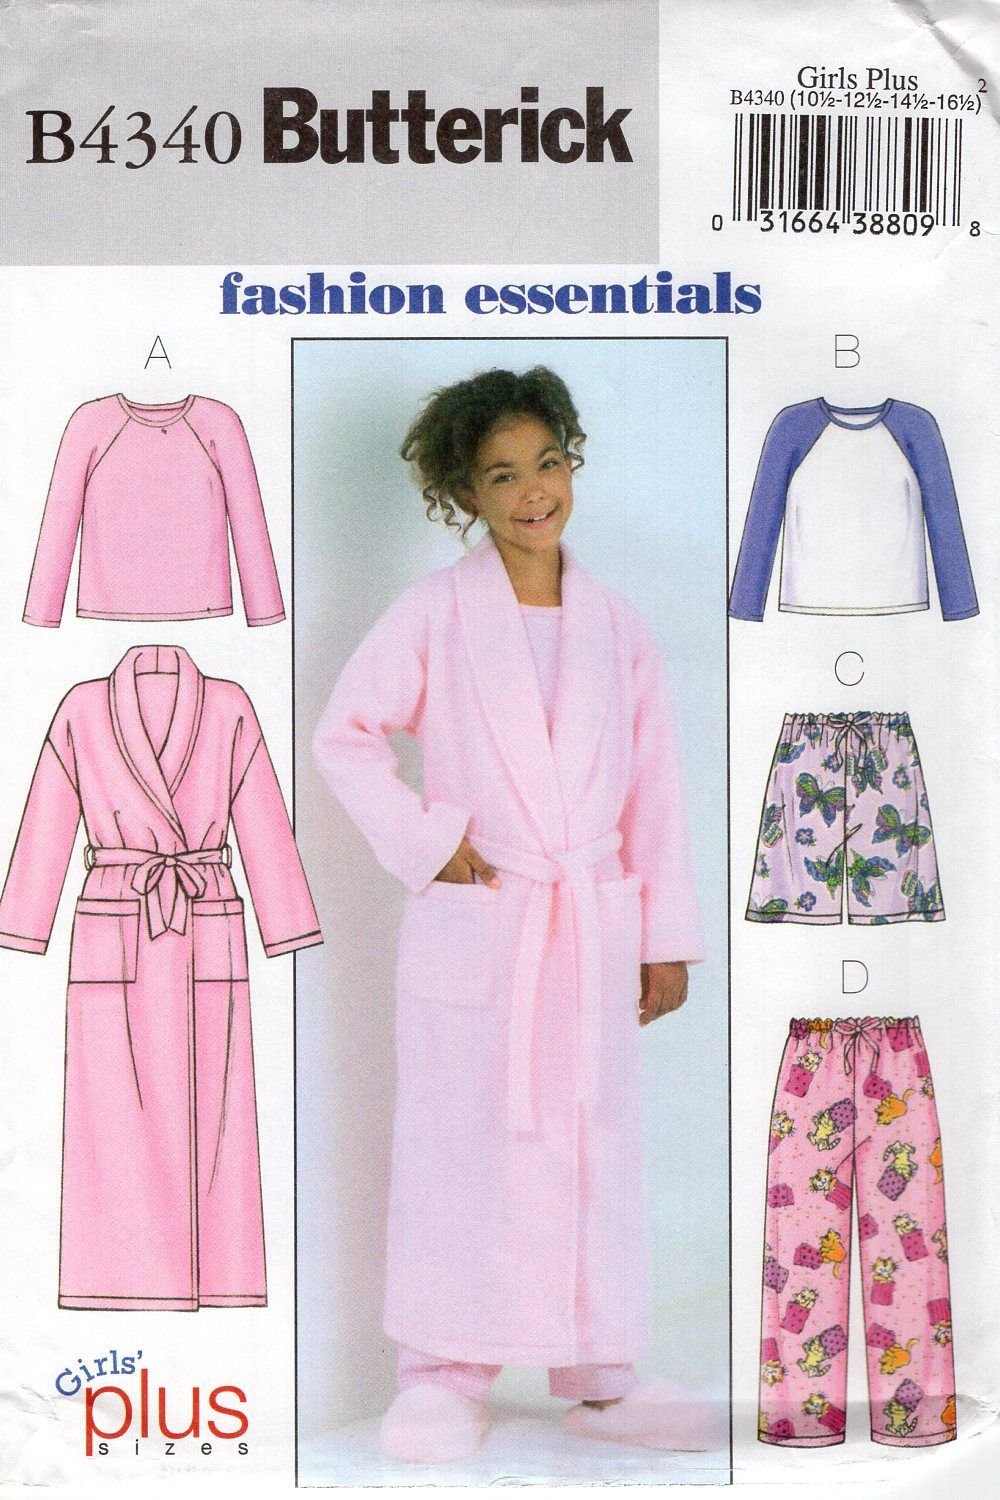 Butterick 4340 free us ship girls plus pjs pajamas bath robe top butterick 4340 free us ship girls plus pjs pajamas bath robe top pants shorts sewing pattern jeuxipadfo Gallery